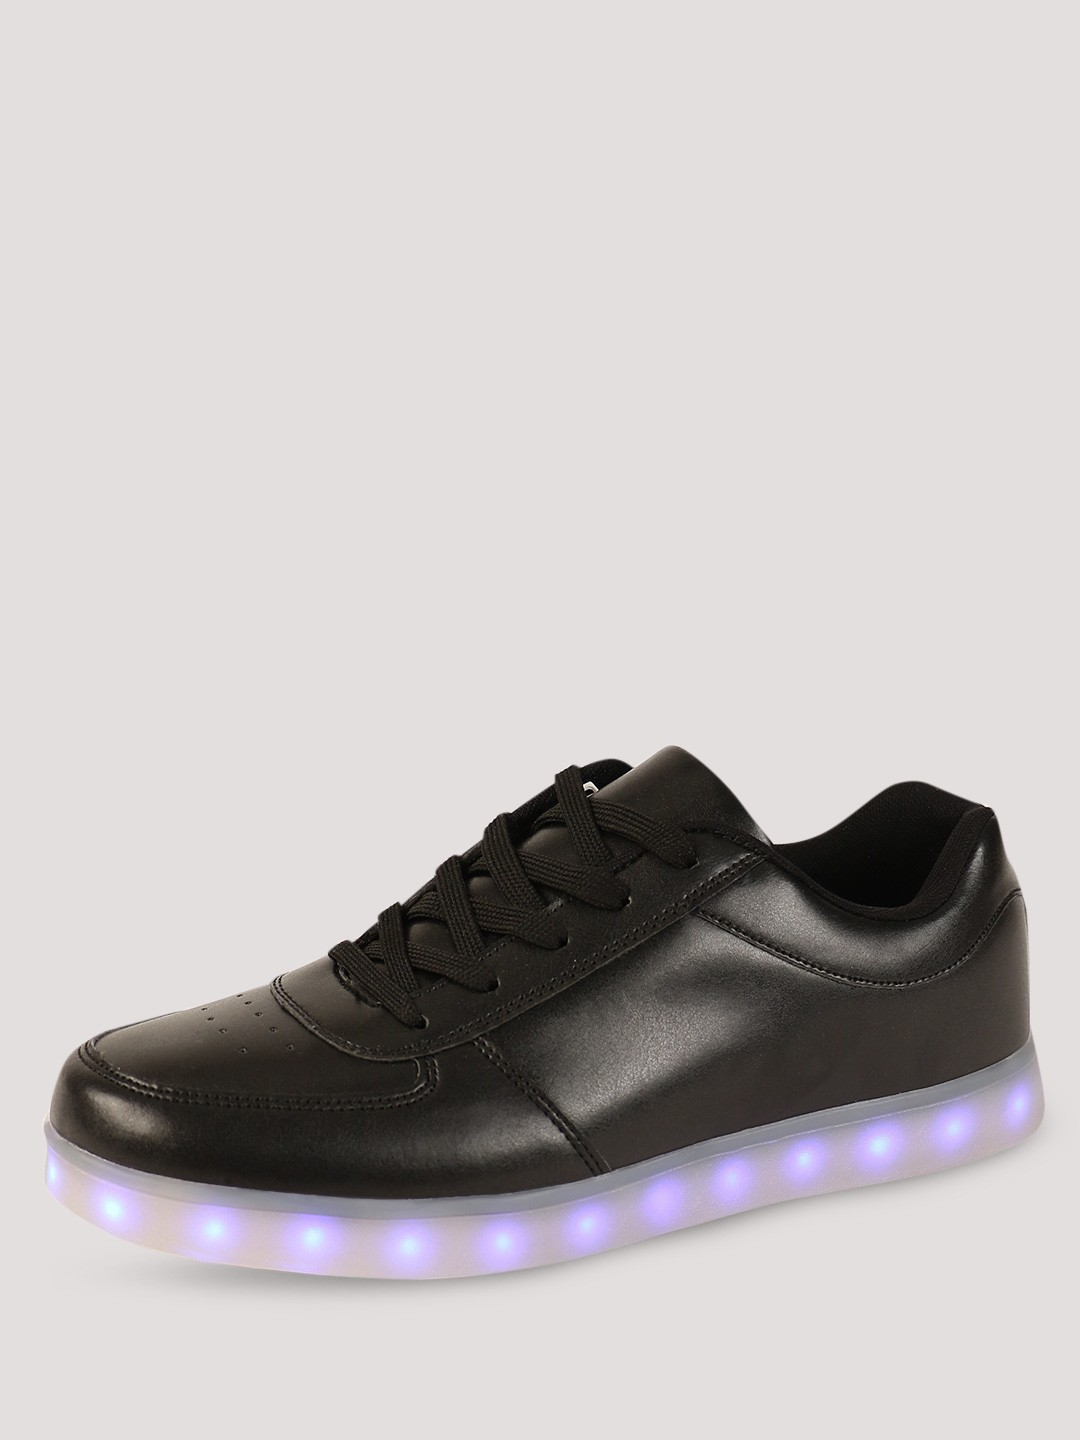 buy koovs light up sole trainers for s black